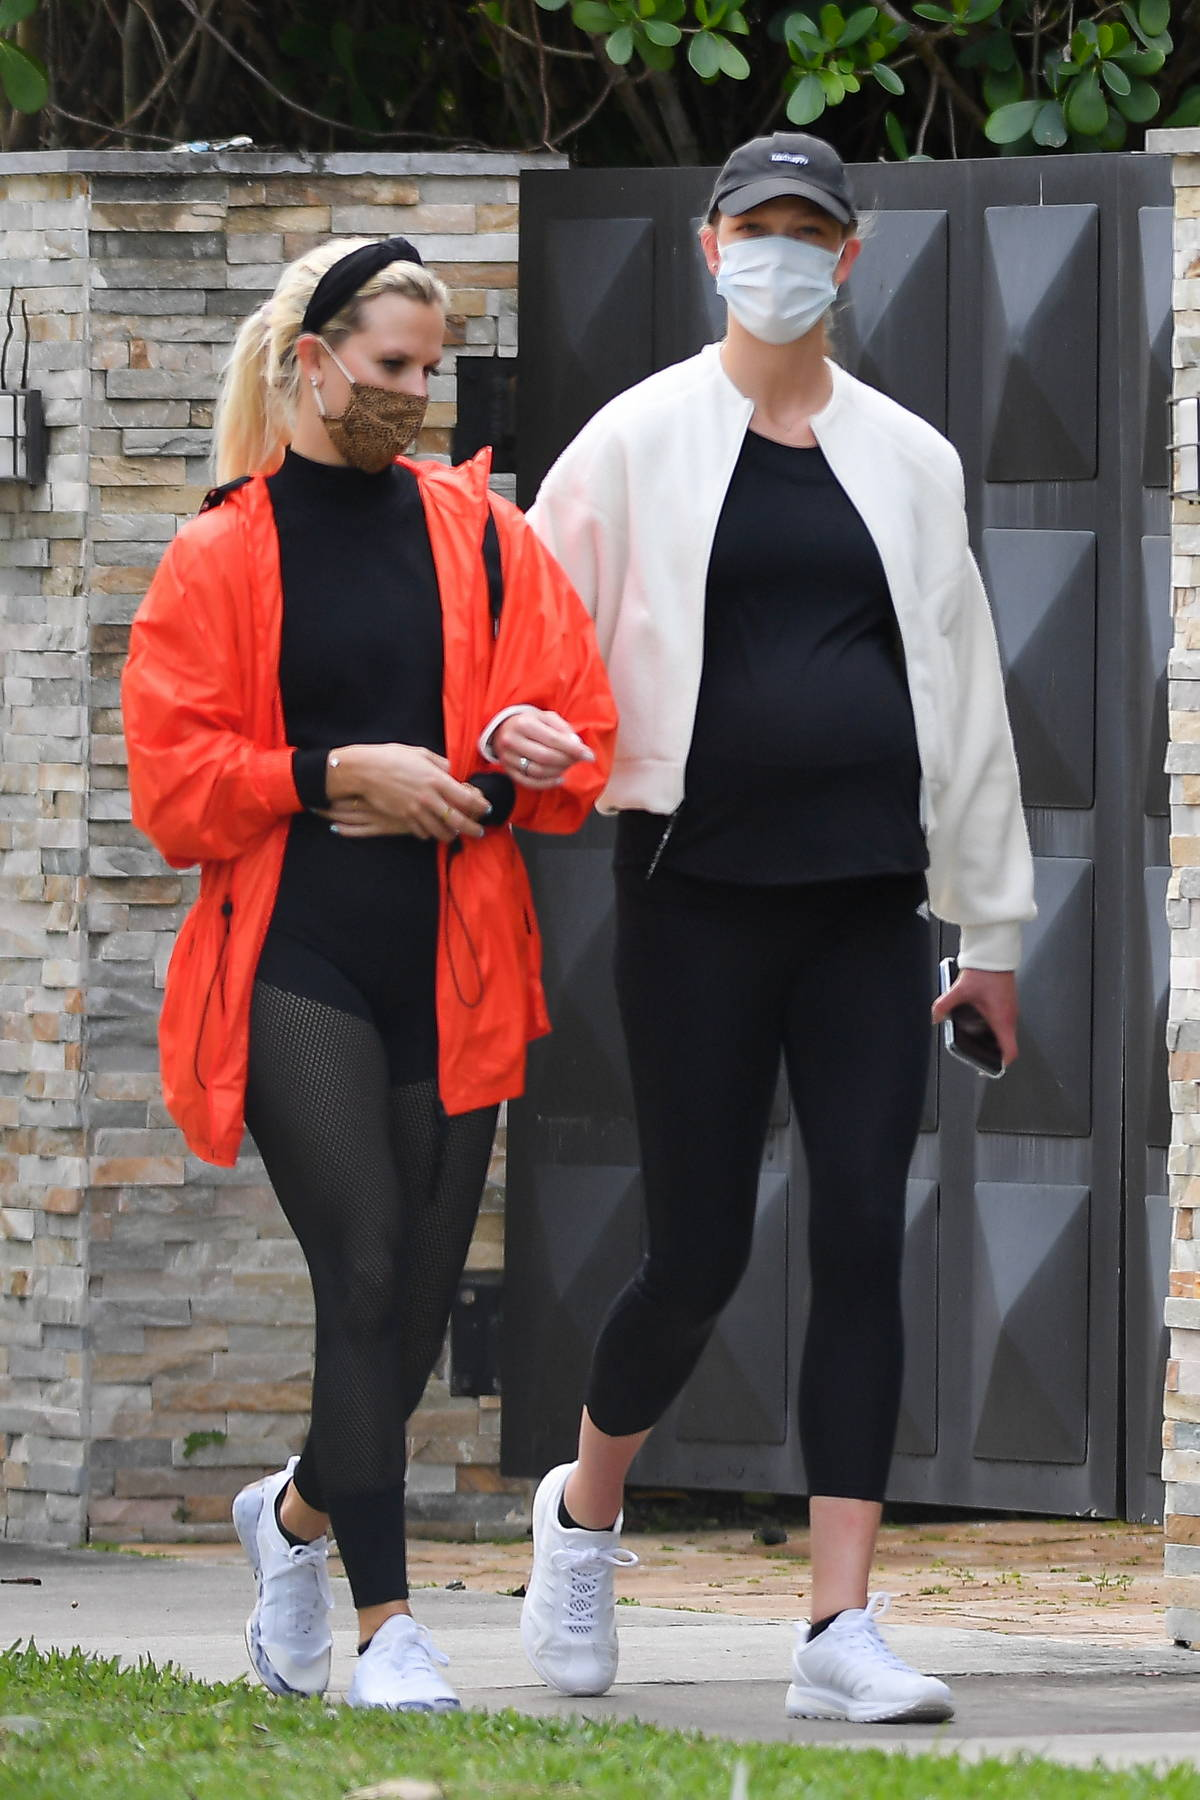 Karlie Kloss walks arm-in-arm with a friend while out for a stroll in Miami Beach, Florida